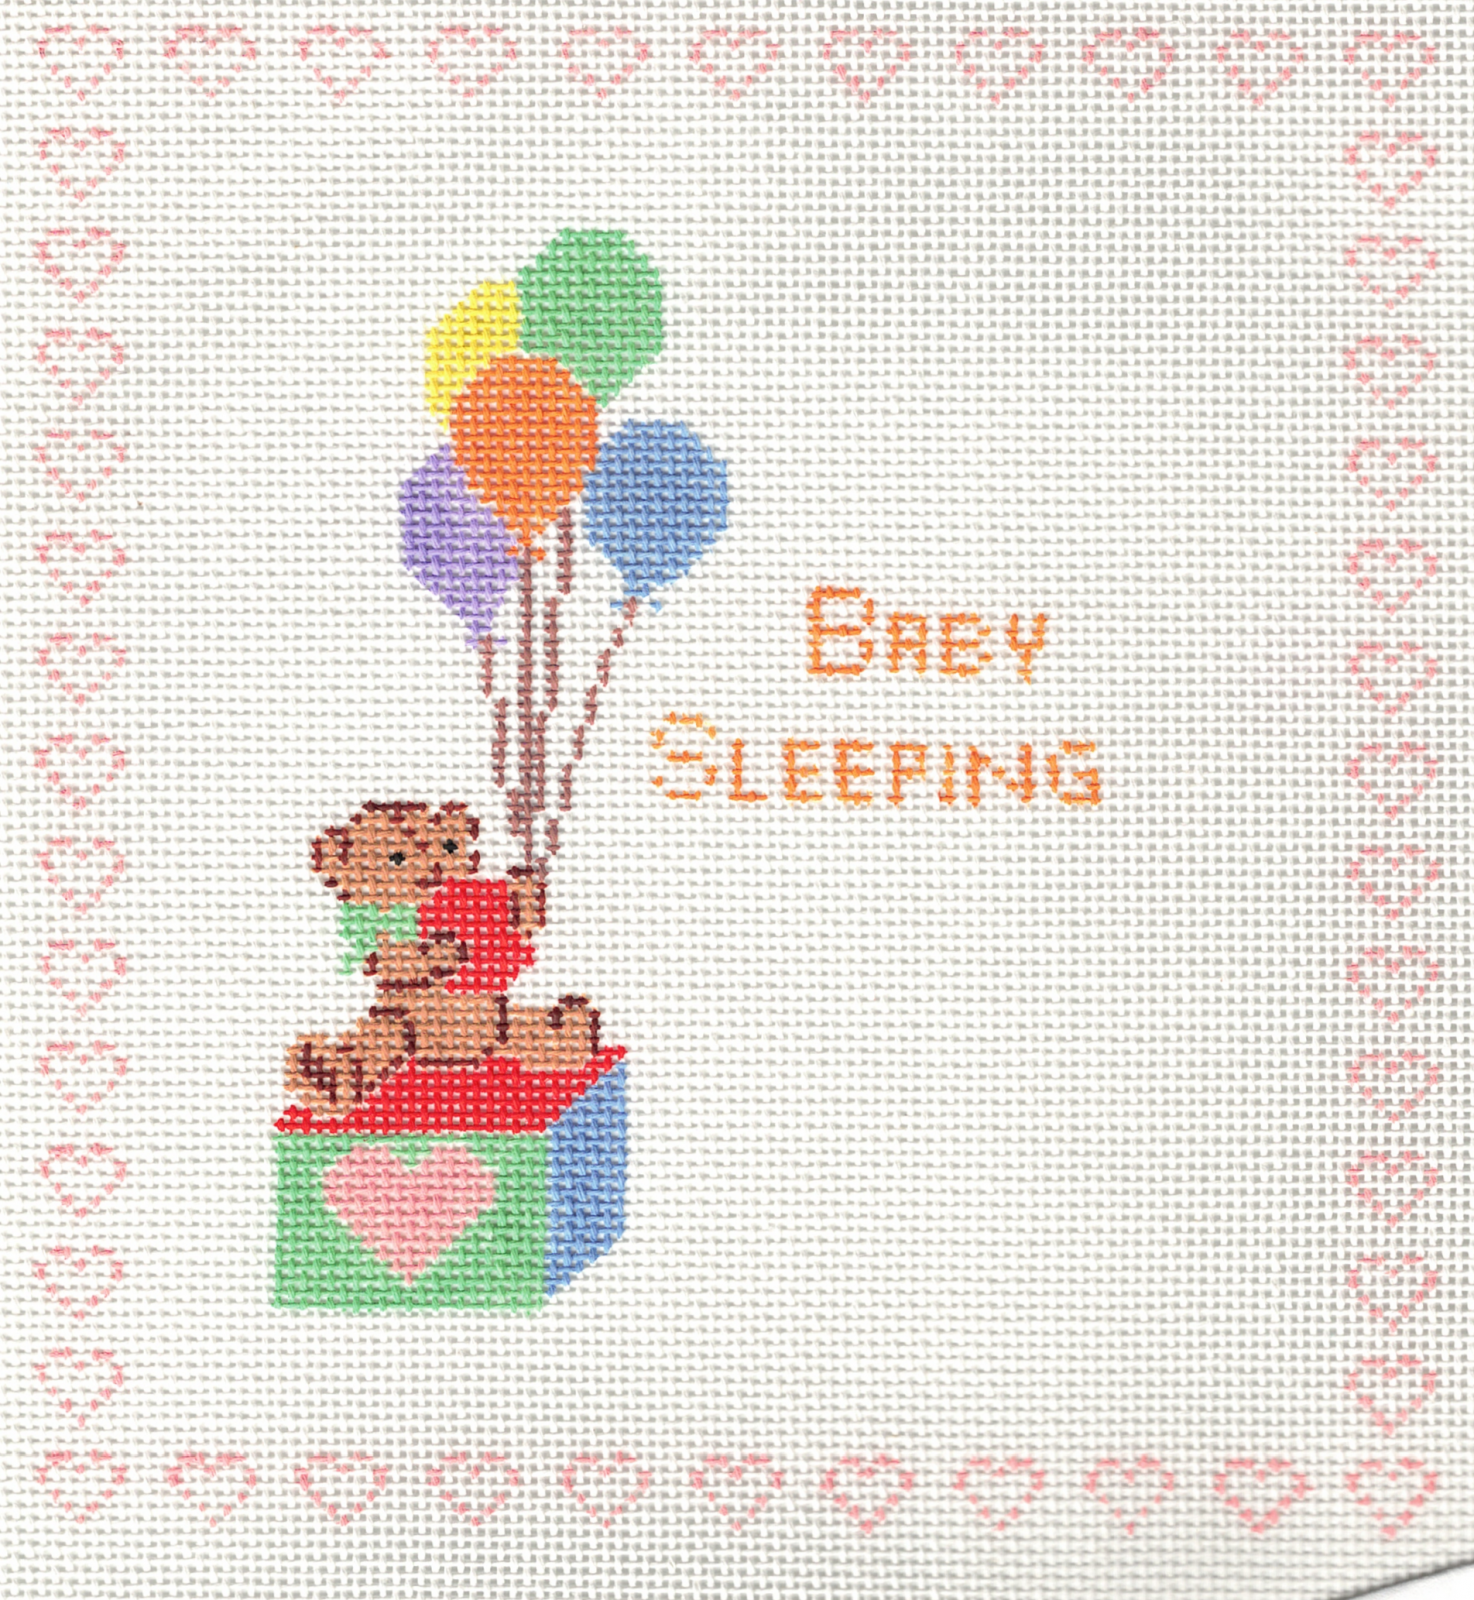 Teddy Bear Baby Sleeping - 18 M